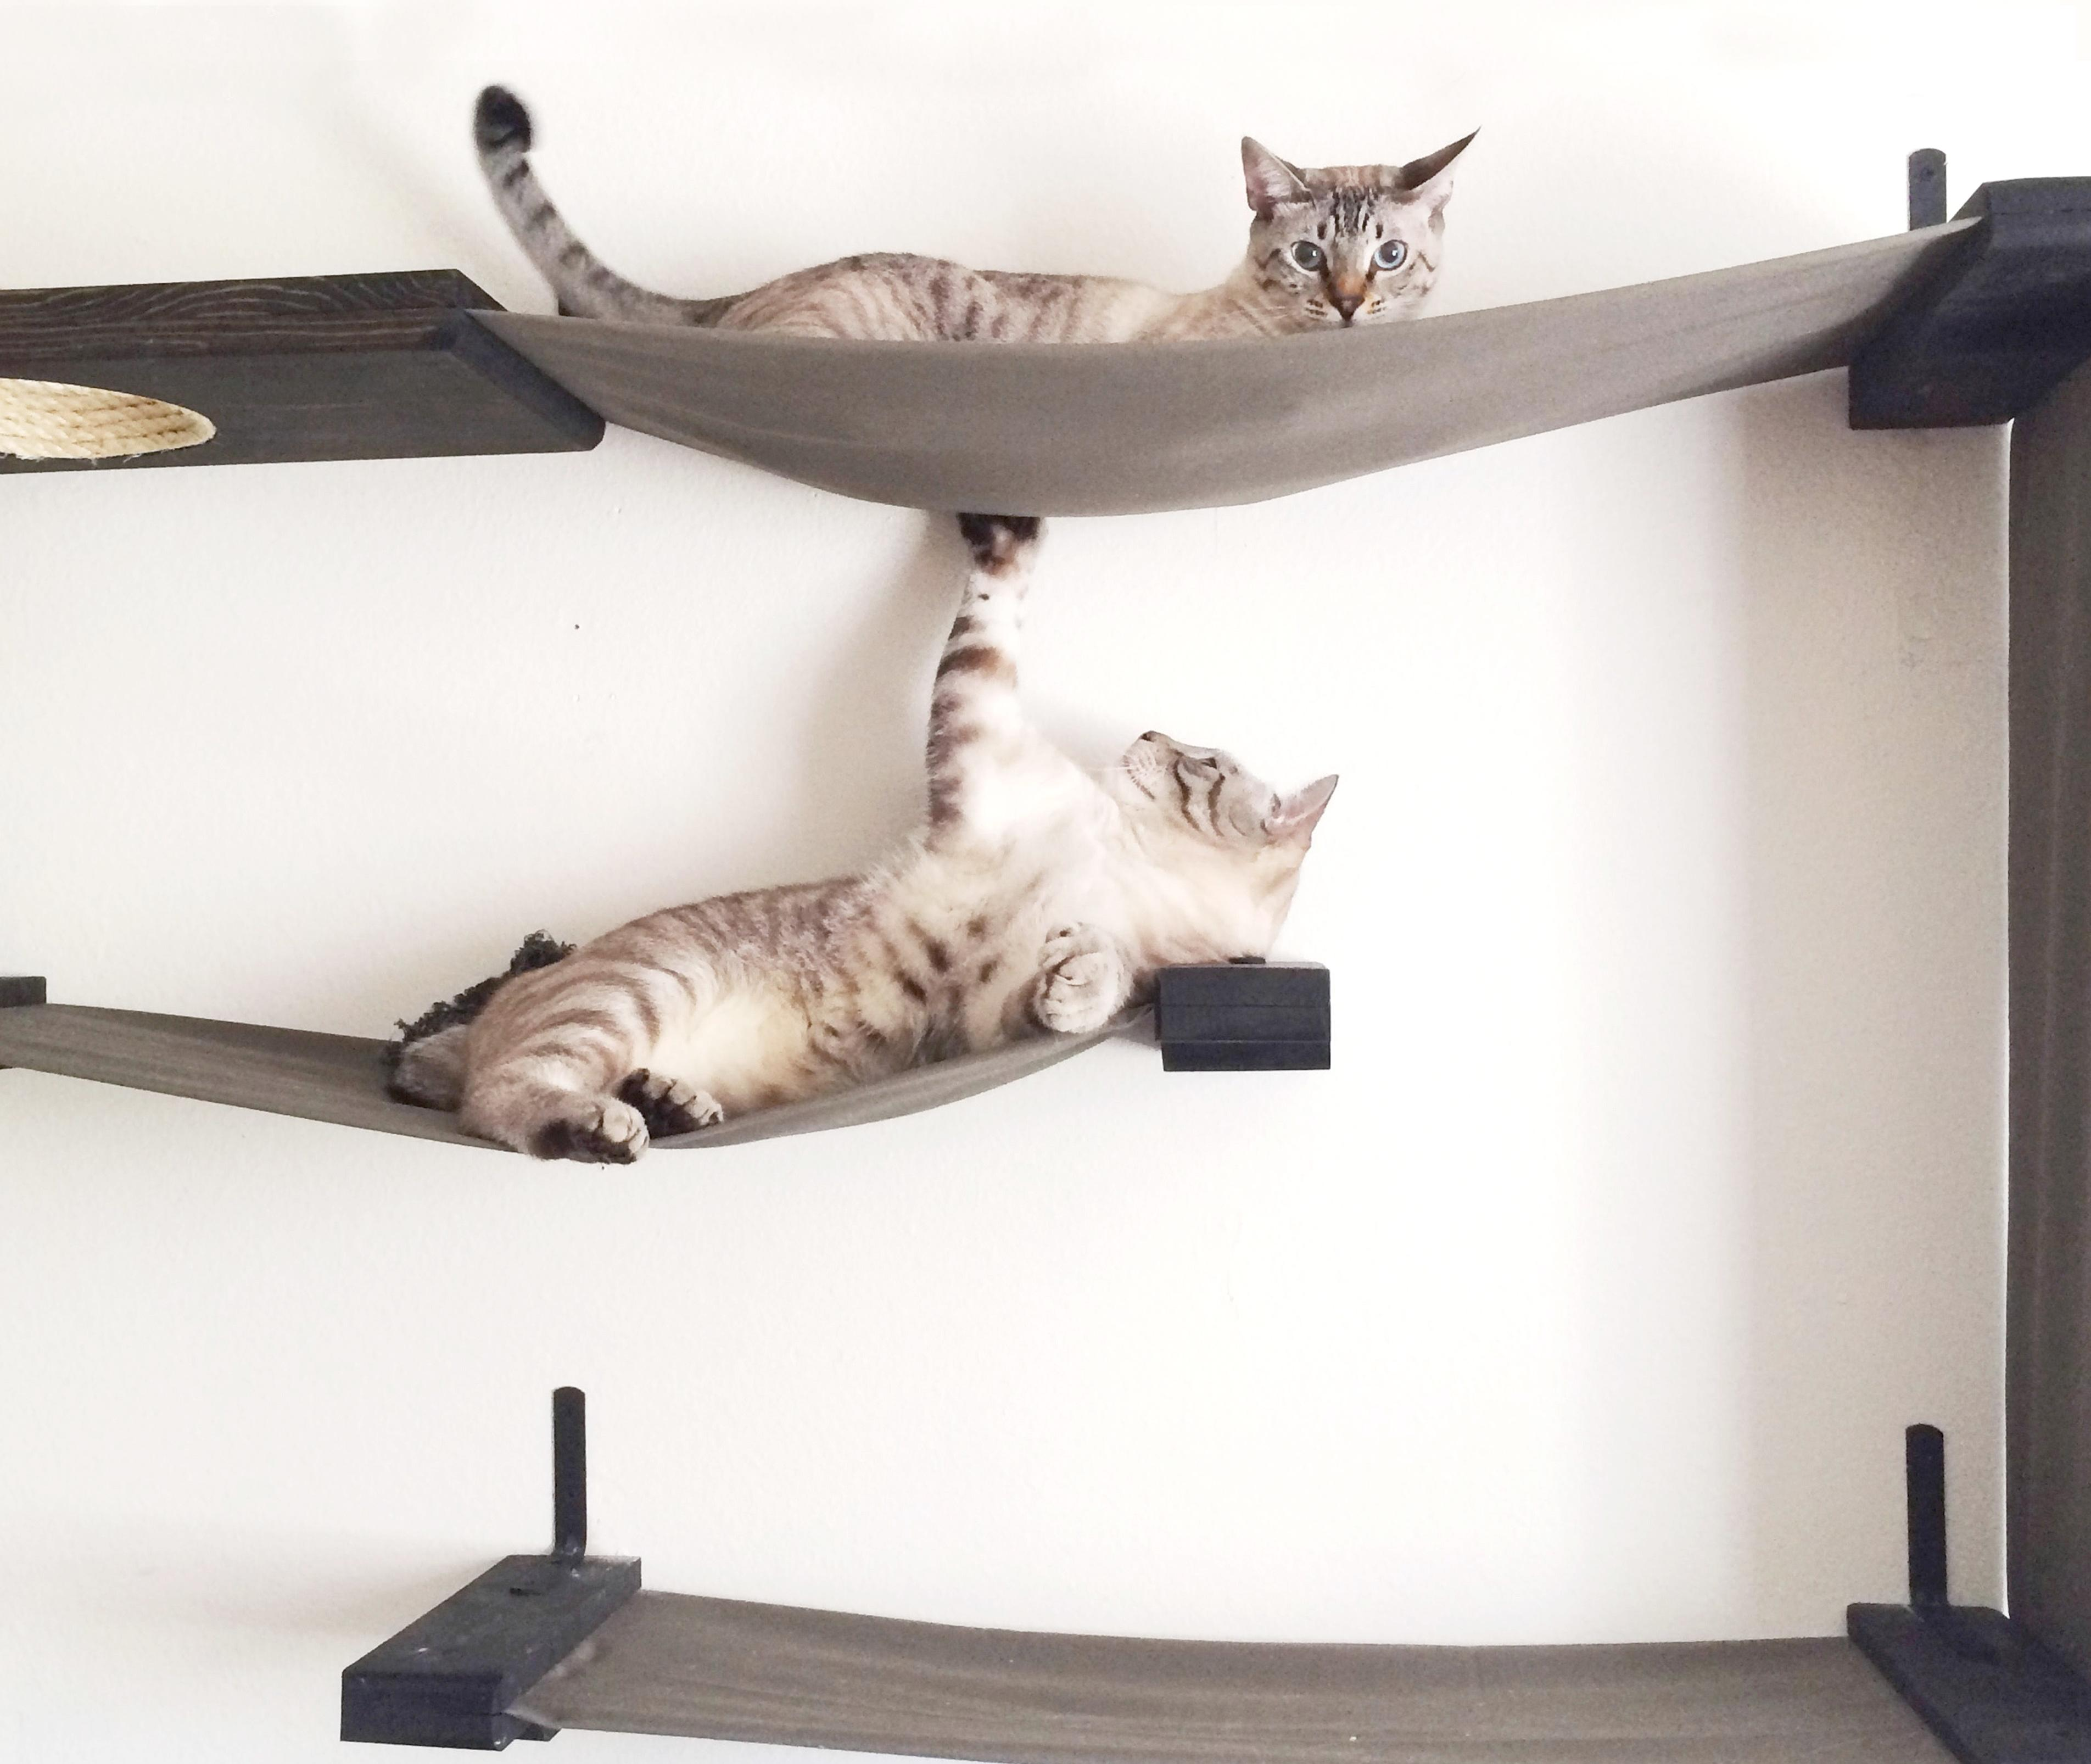 catastrophicreations hammock lounger handcrafted wall mounted cat furniture. Black Bedroom Furniture Sets. Home Design Ideas